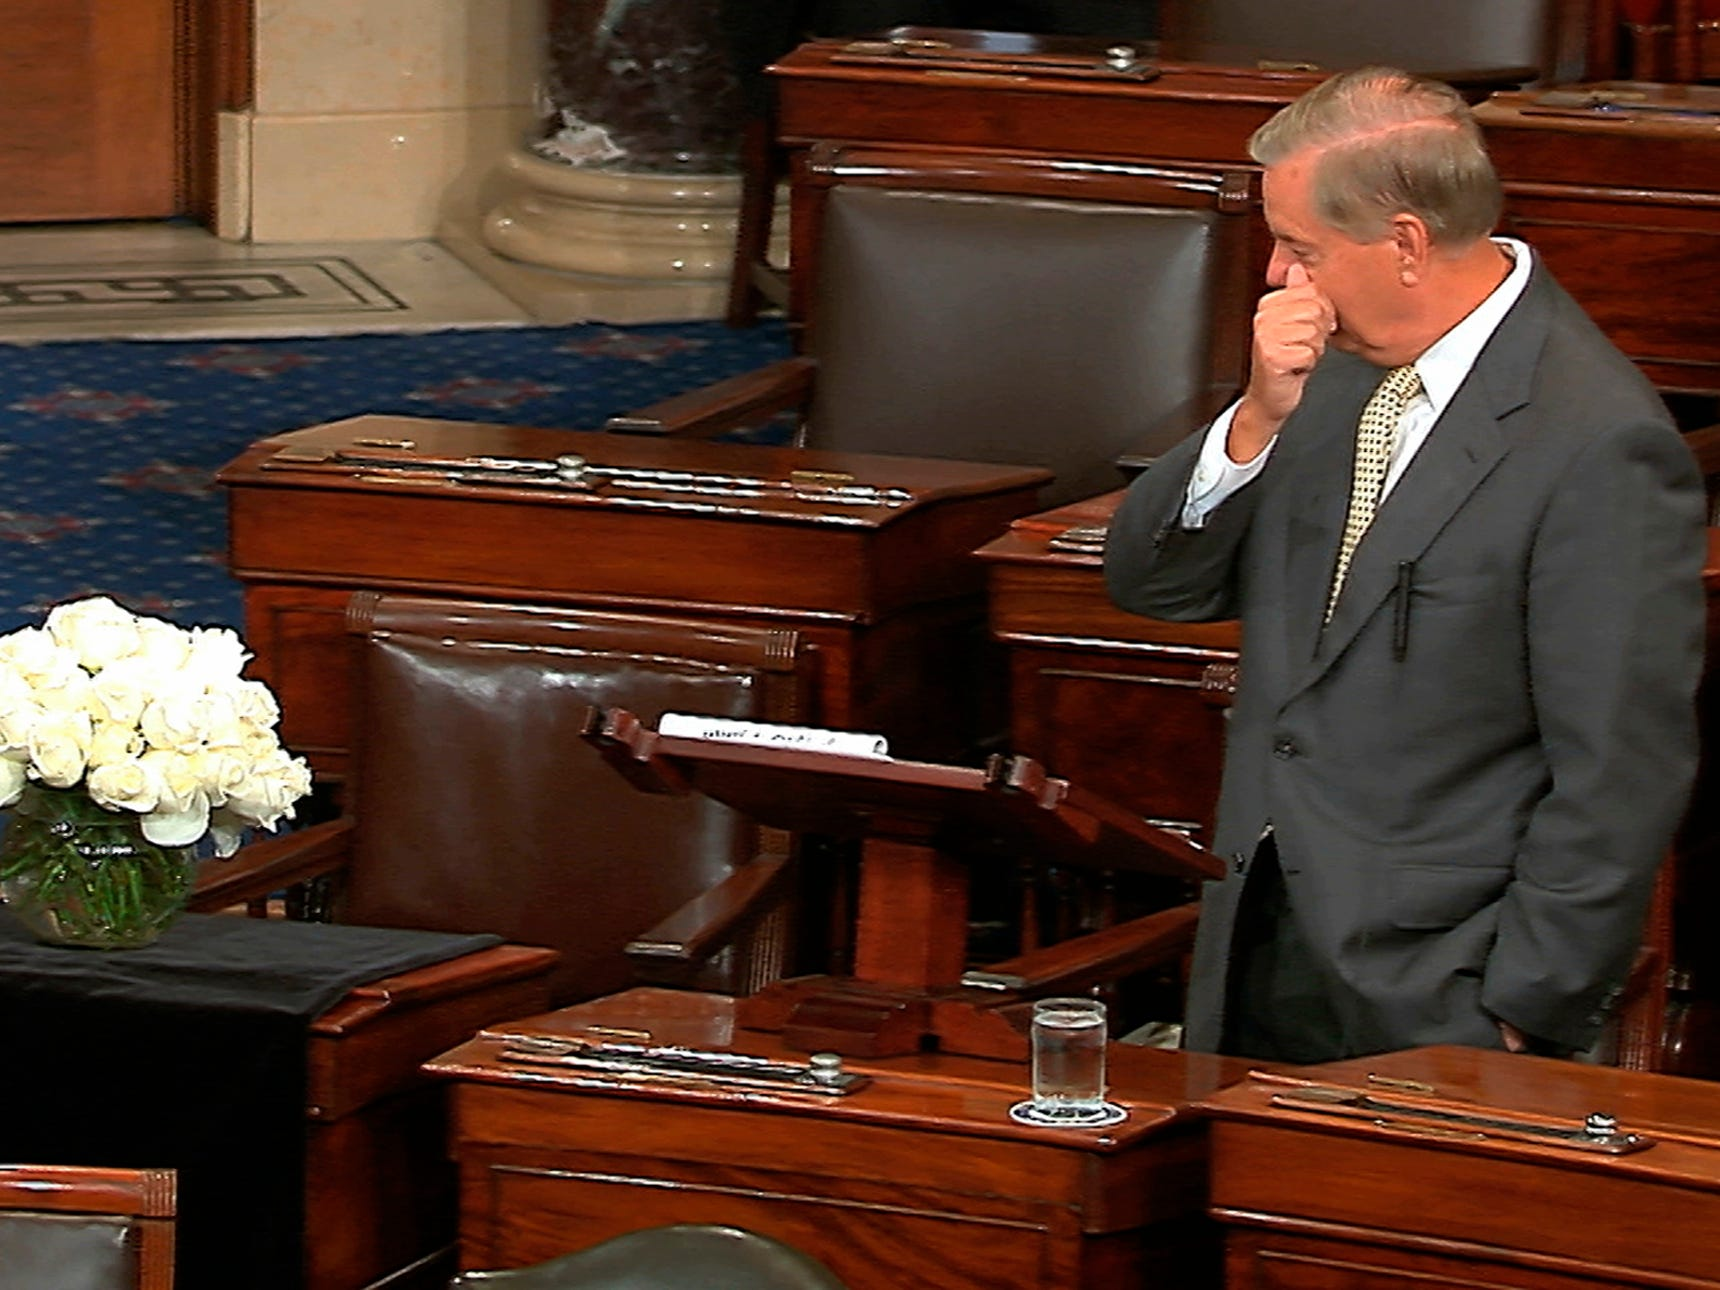 In this image from Senate Television, Sen. Lindsey Graham, R-S.C., pauses as he speaks on the Senate floor at the Capitol in Washington, on Tuesday, Aug. 28, 2018, next to the desk of Sen. John McCain, R-Ariz., draped in black with a bowl of white roses sitting on it. McCain died on Aug. 25, after battling brain cancer. Graham was McCain's best friend in the Senate.